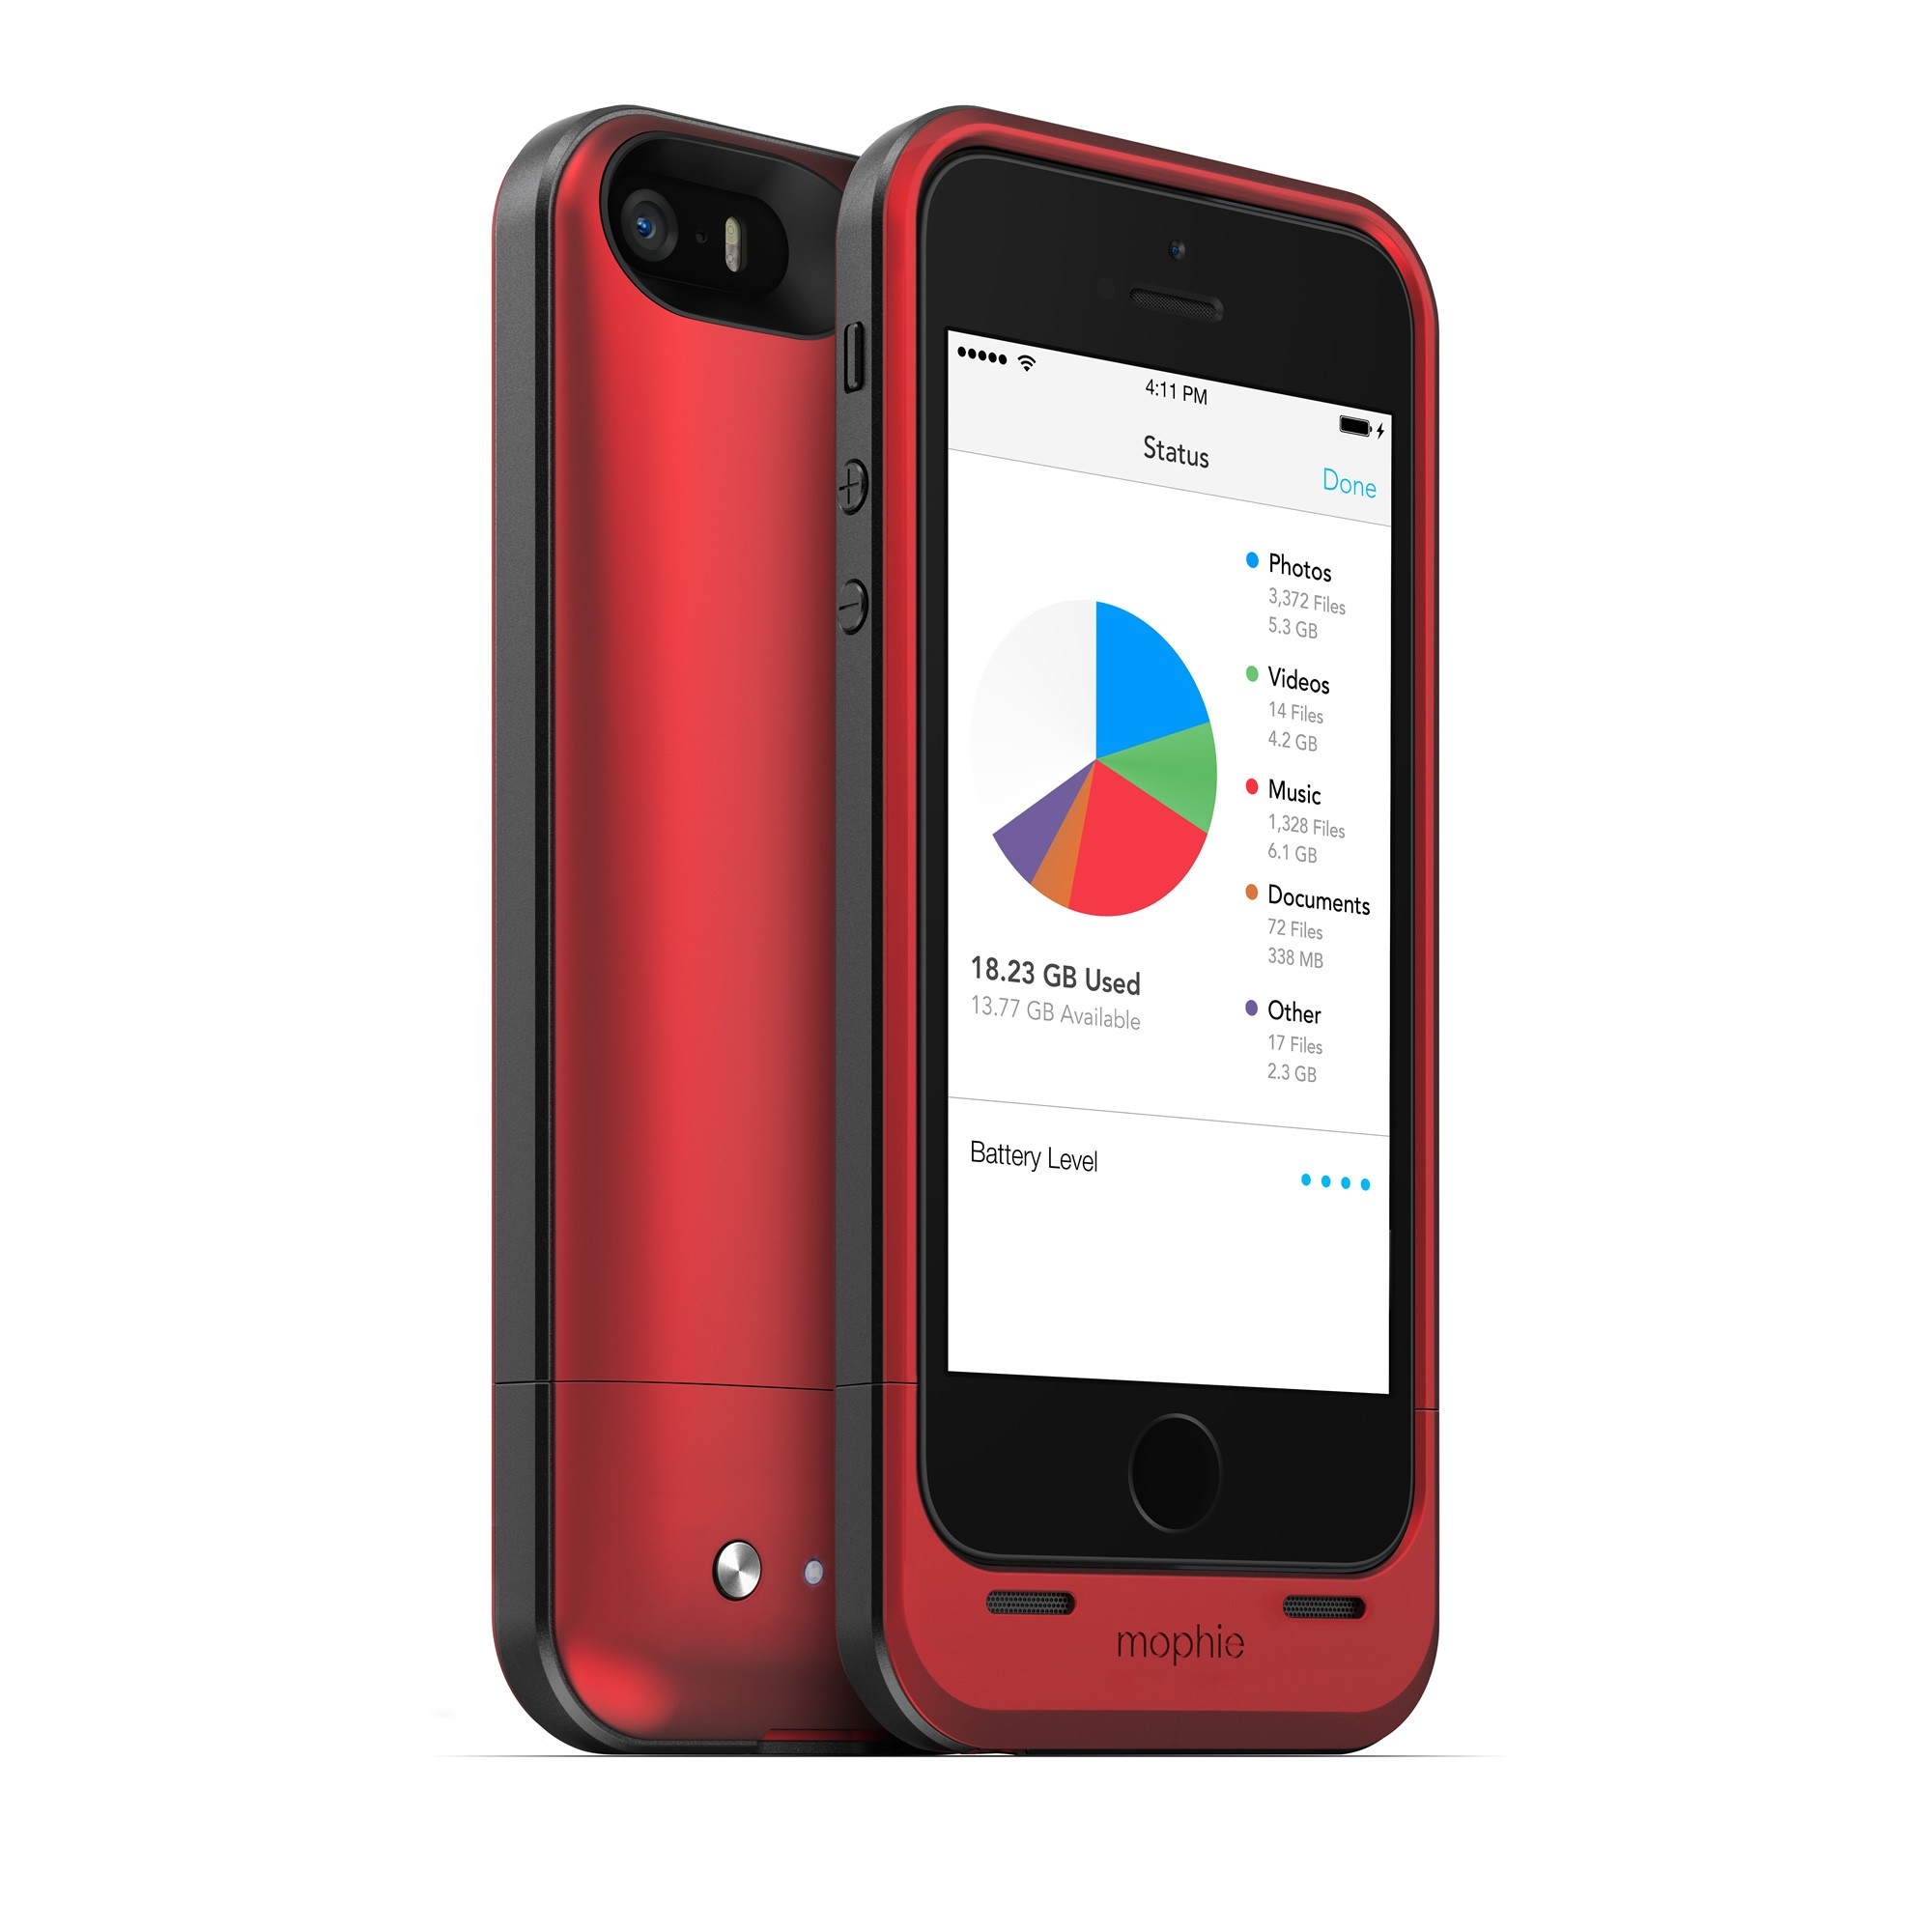 mophie spacepack battery case w built in 32gb storage for iphone 5 5s se new ebay. Black Bedroom Furniture Sets. Home Design Ideas